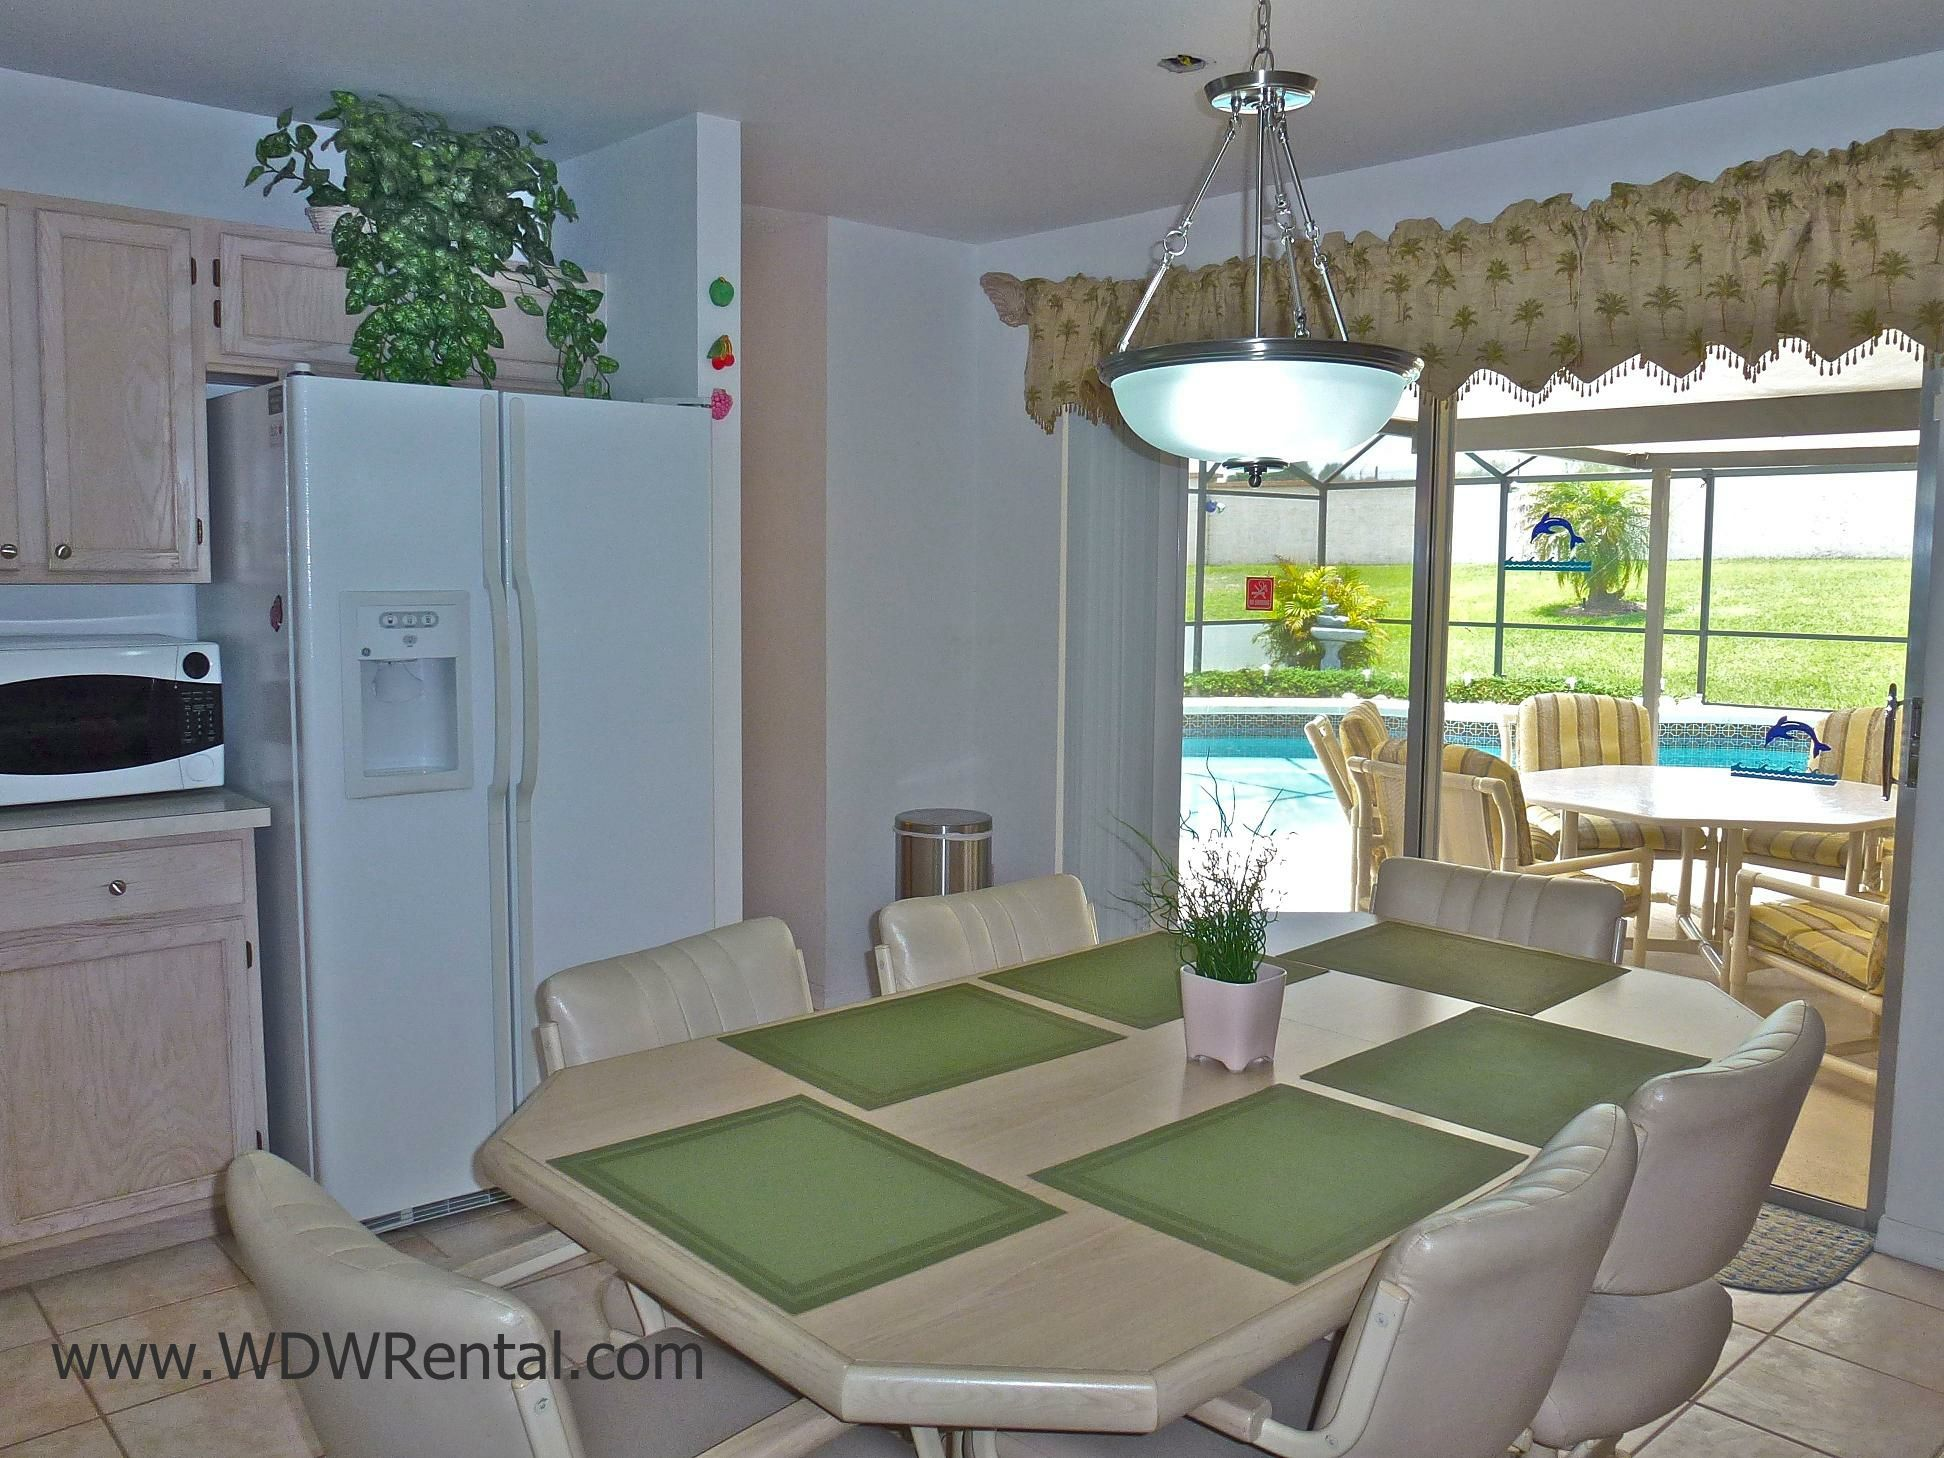 Eatin kitchen table and chairs for a meal or family gathering